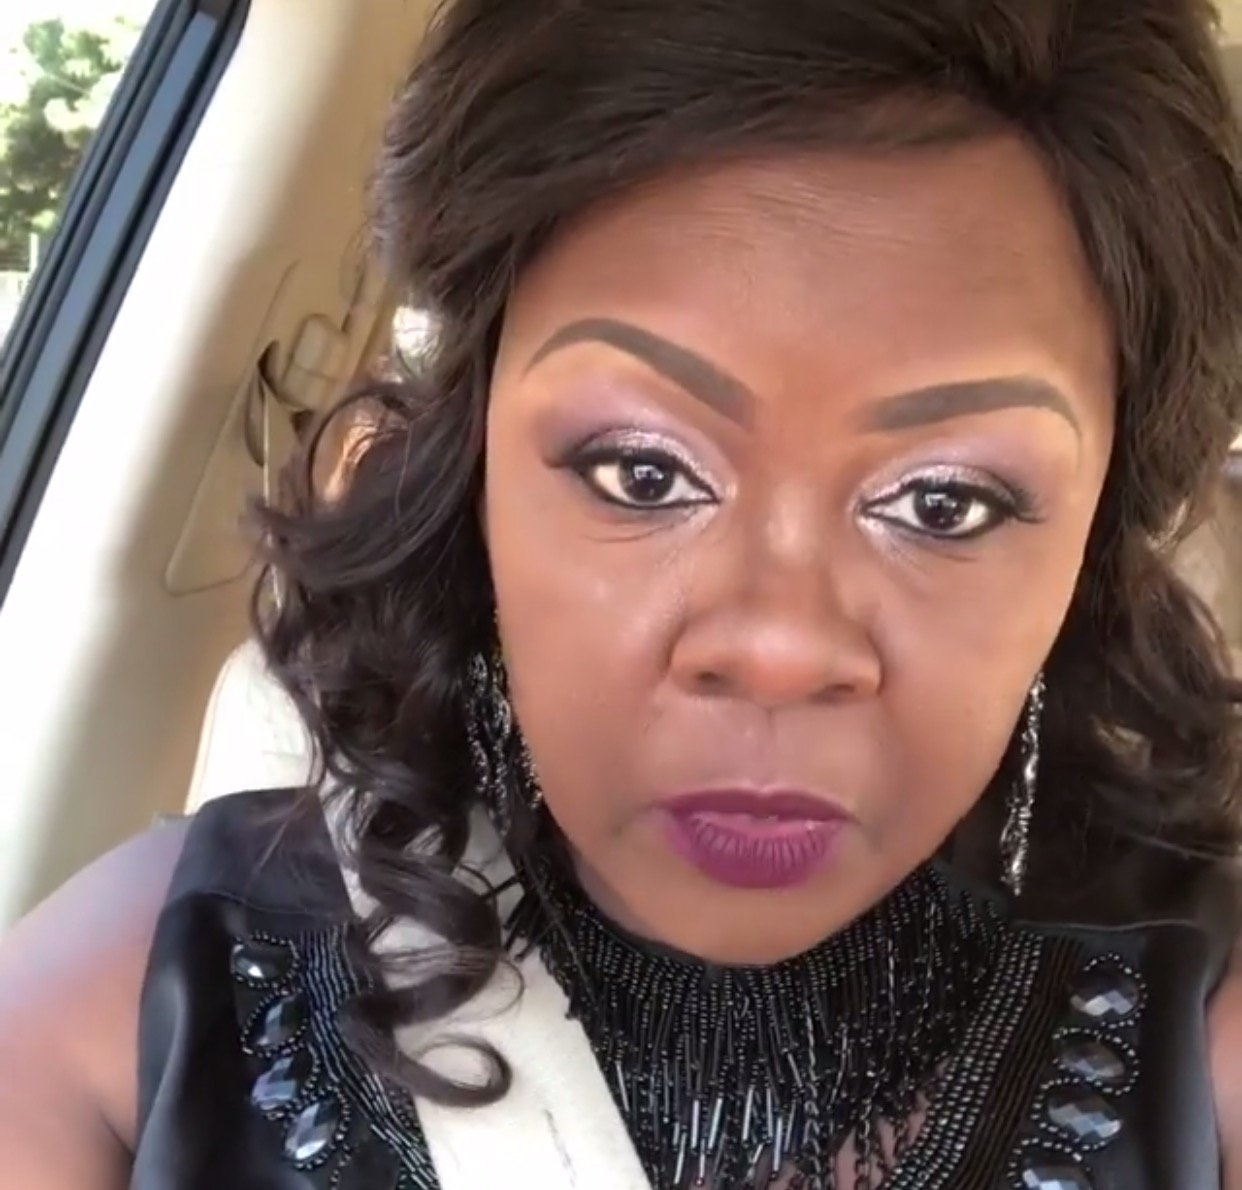 Kathy Kiuna's 'poor' tweet leaves Kenyans annoyed